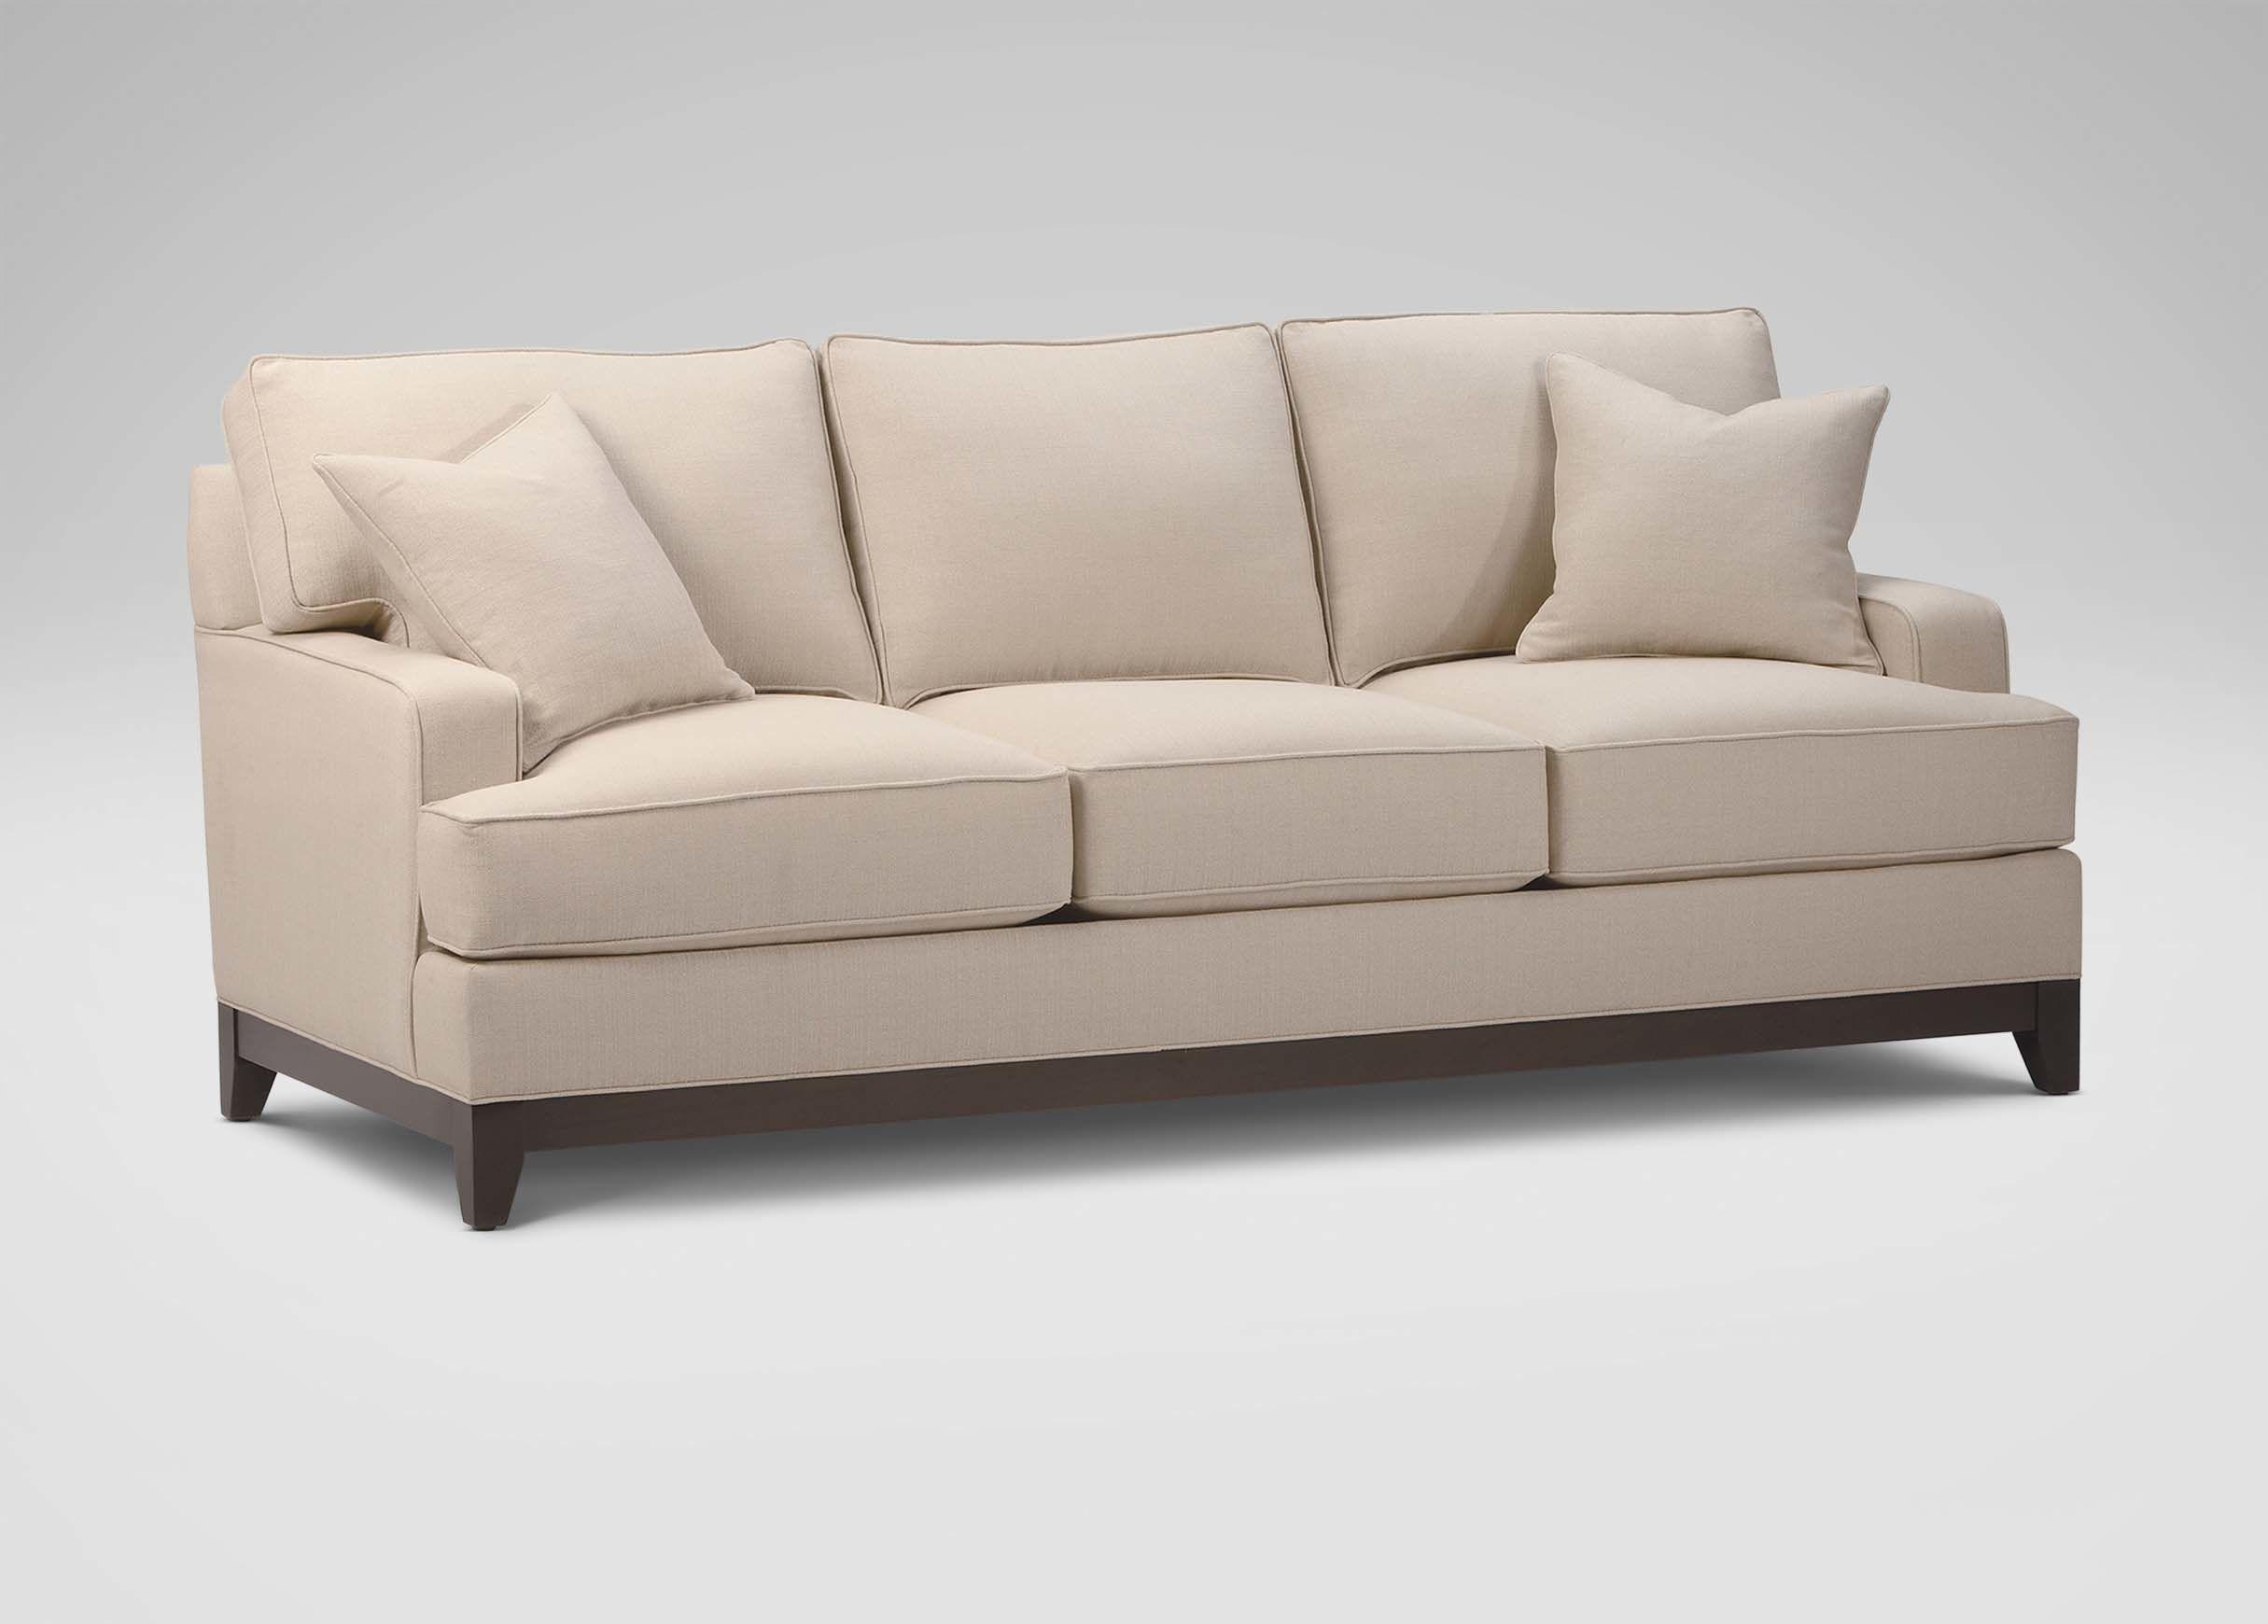 ethan allen sofas furniture building plans sofa 20 inspirations chesterfield ideas